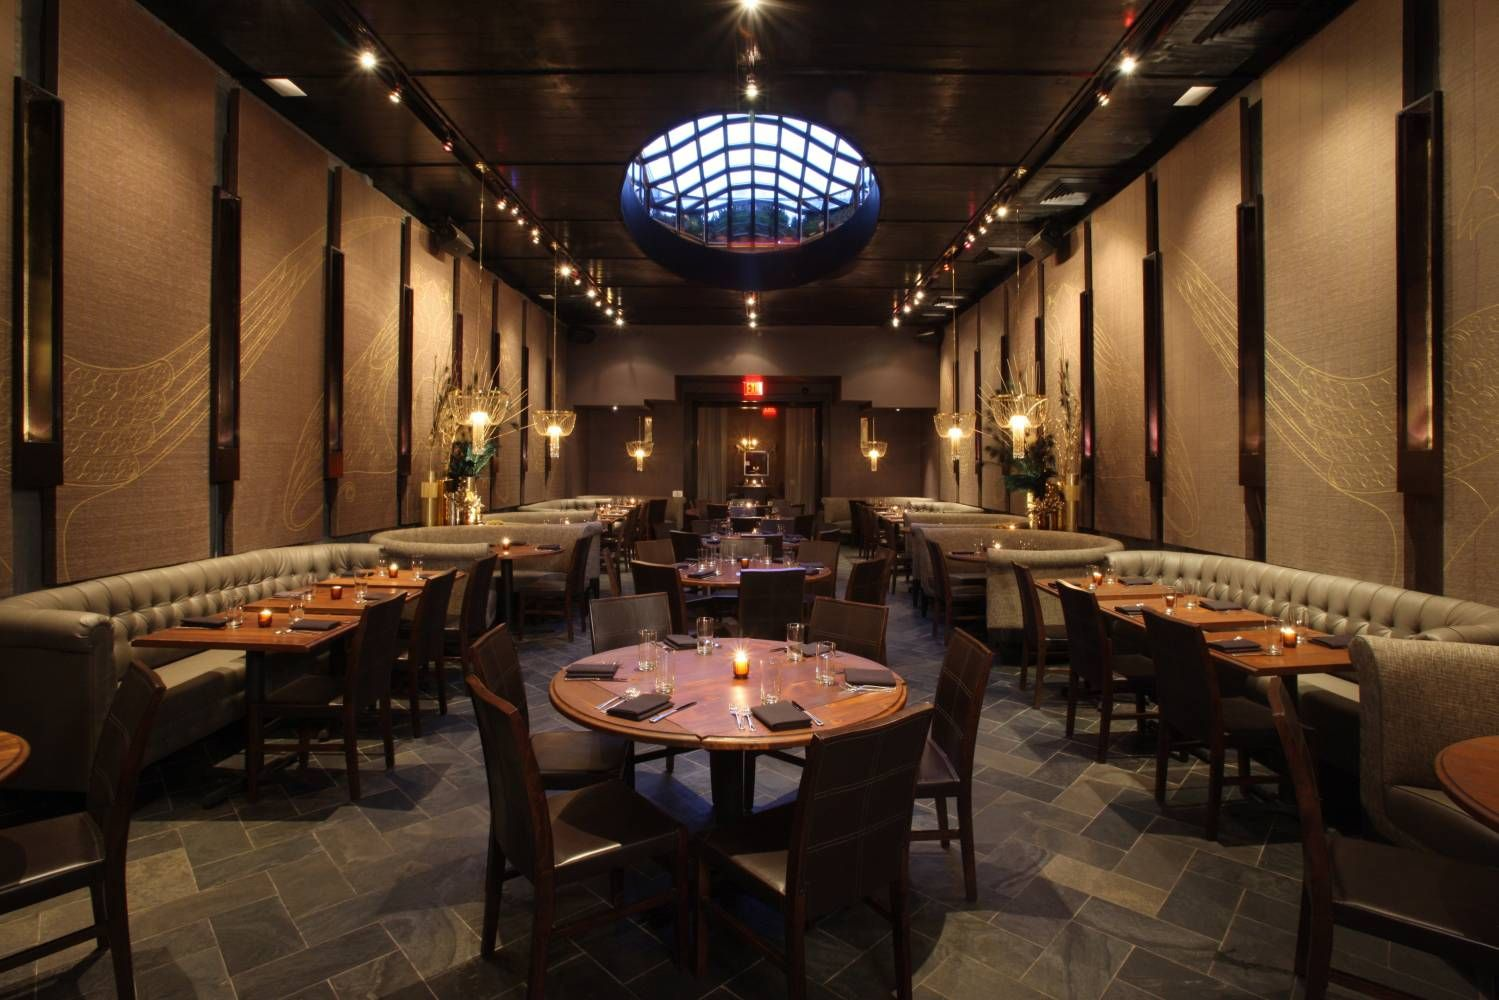 NYC Restaurant Week 2017 20 Of The Best Deals For Lunch And Dinner